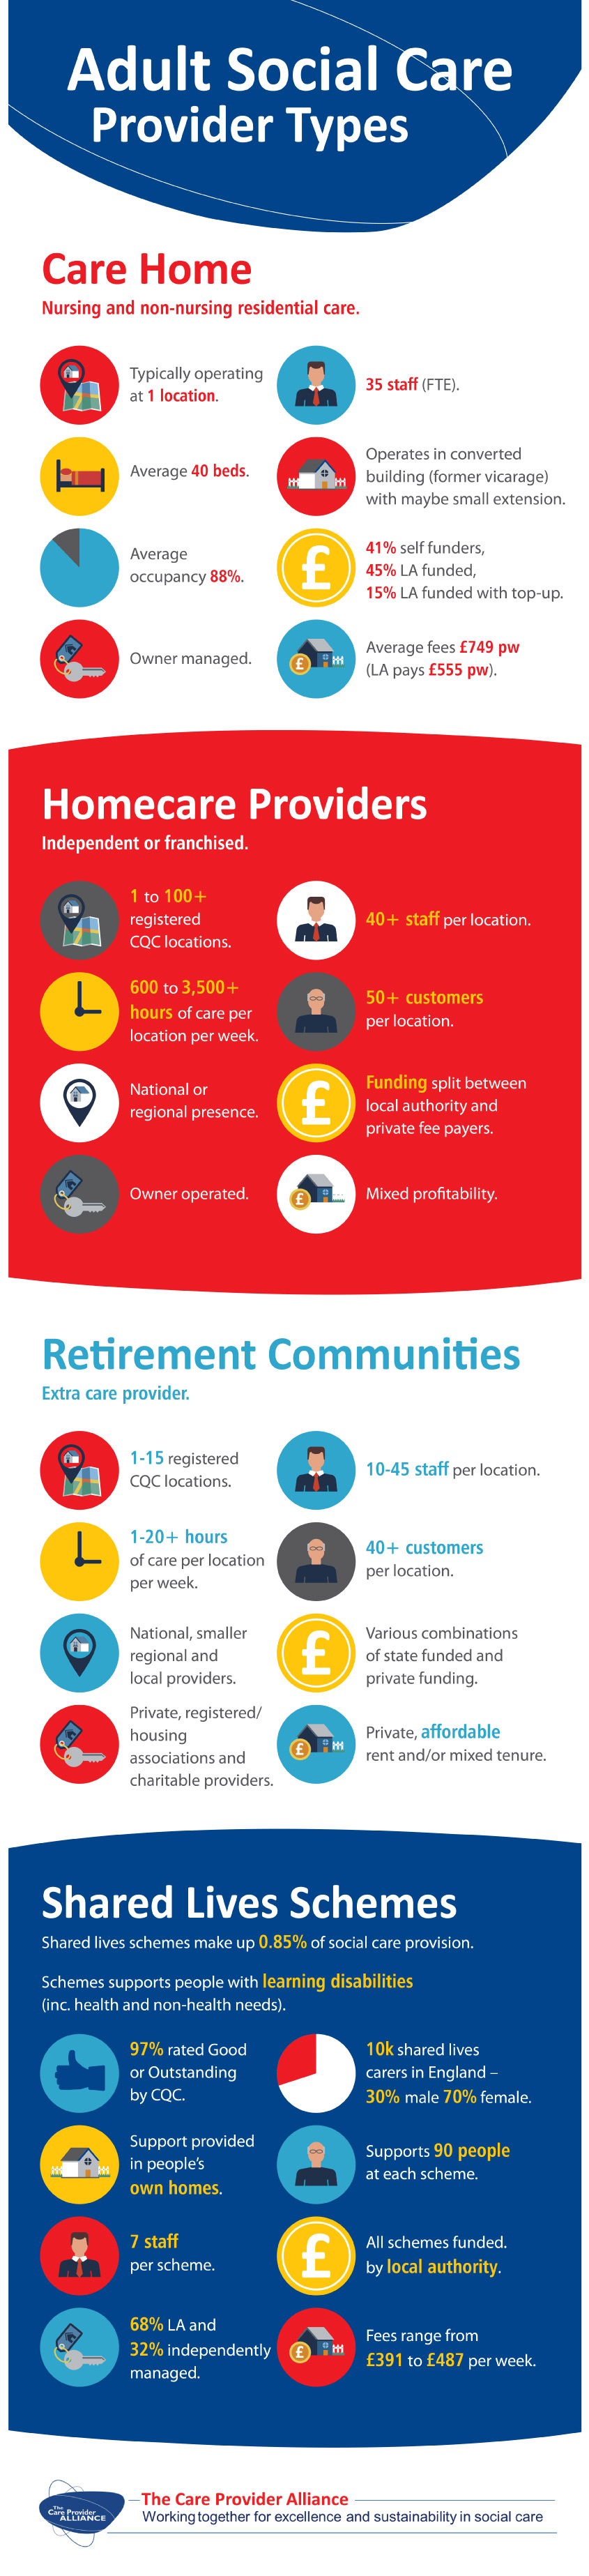 infographic of Social Care Provider Types